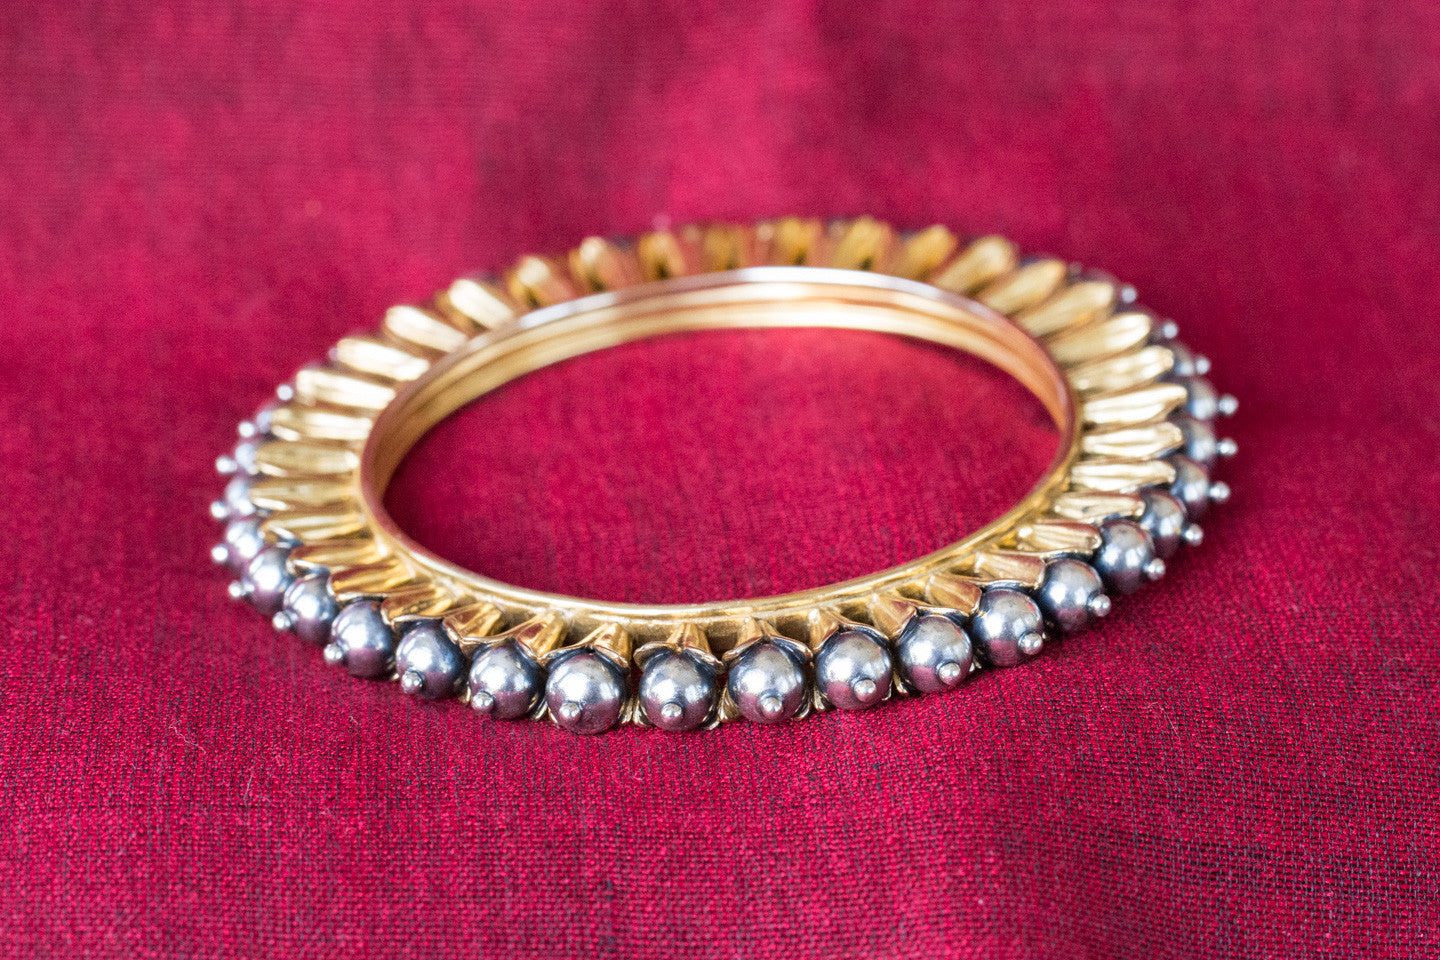 20a527-silver-gold-plated-amrapali-bangle-two-tone